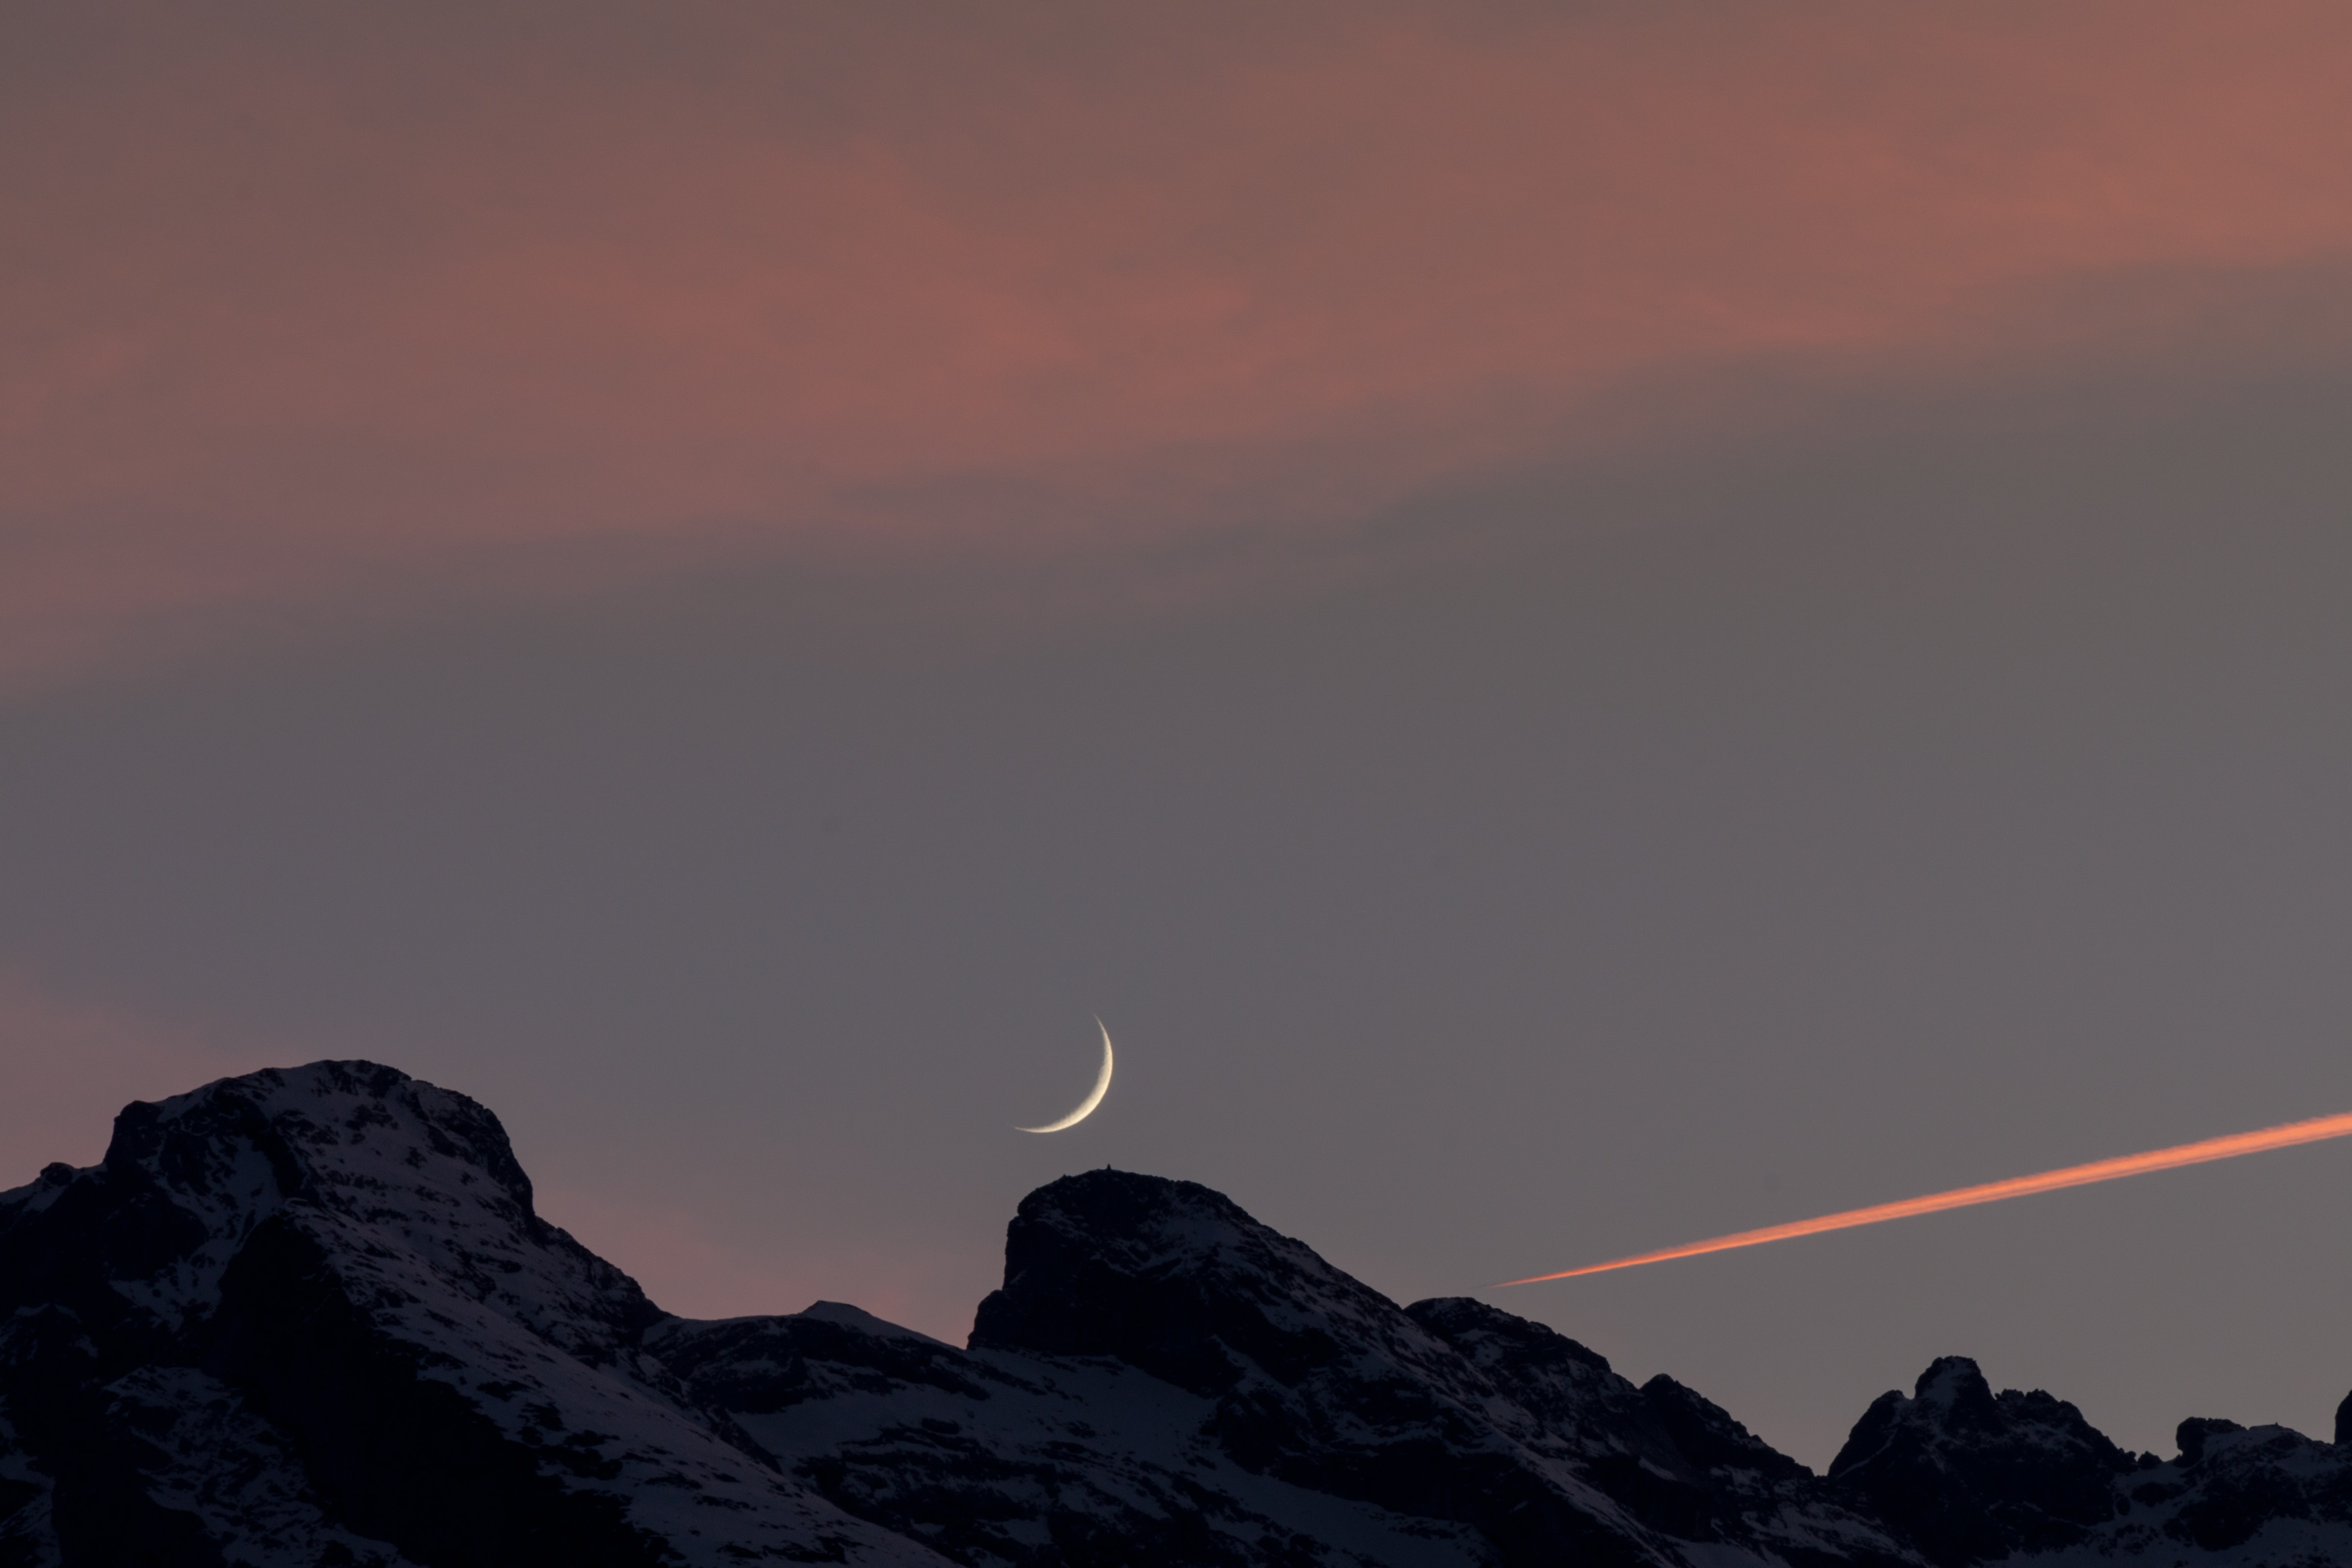 A dark sky with a small crescent moon in Hoch Geissberg